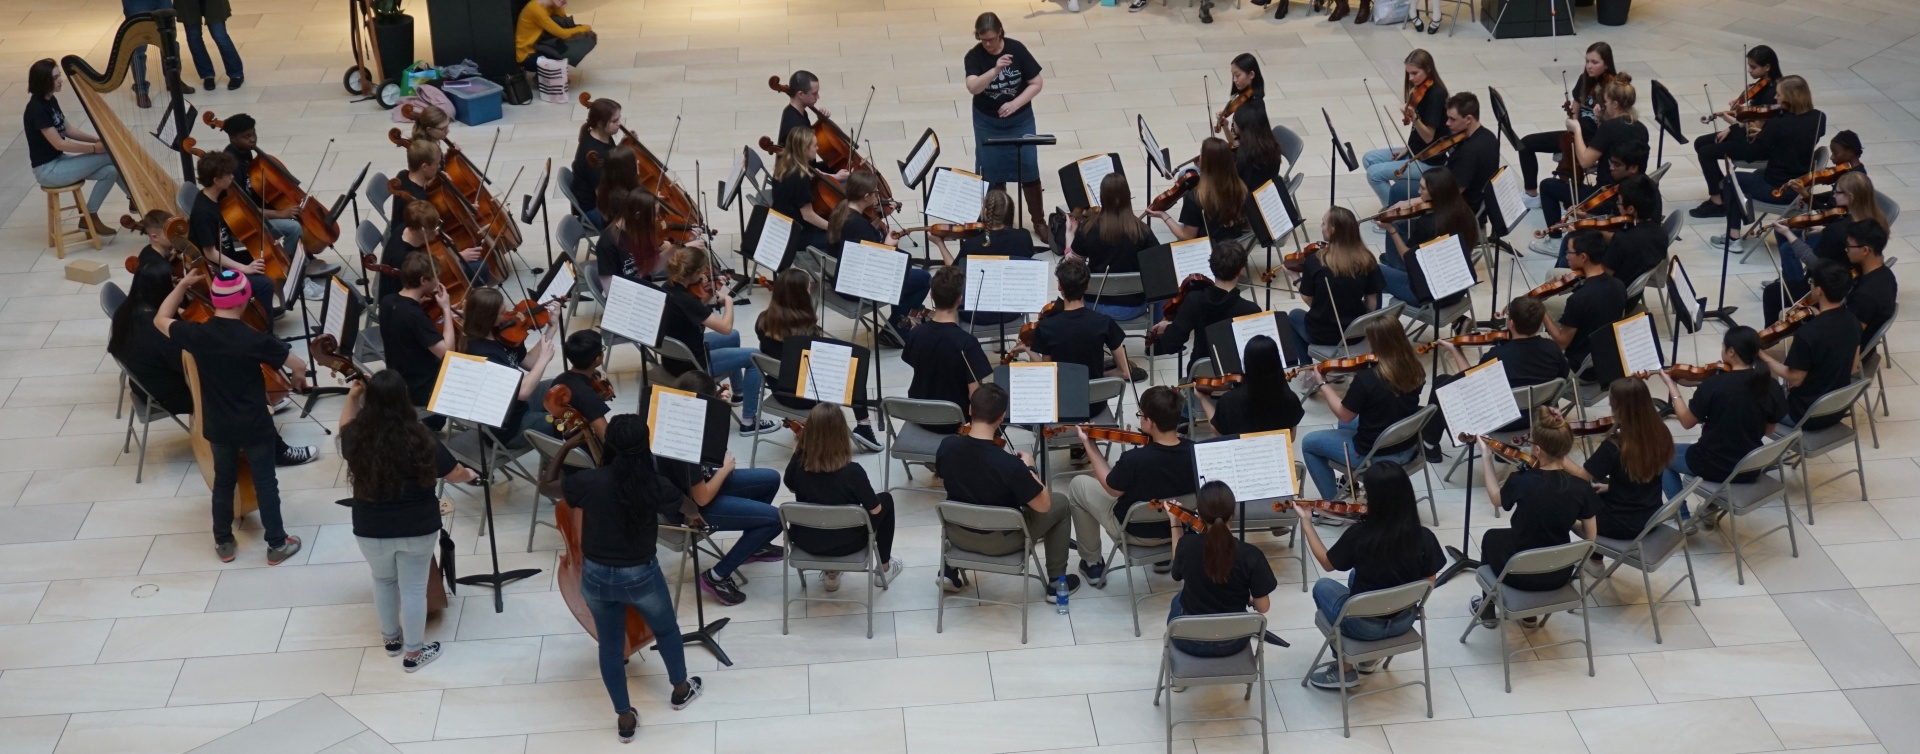 Orchestra students playing in mall